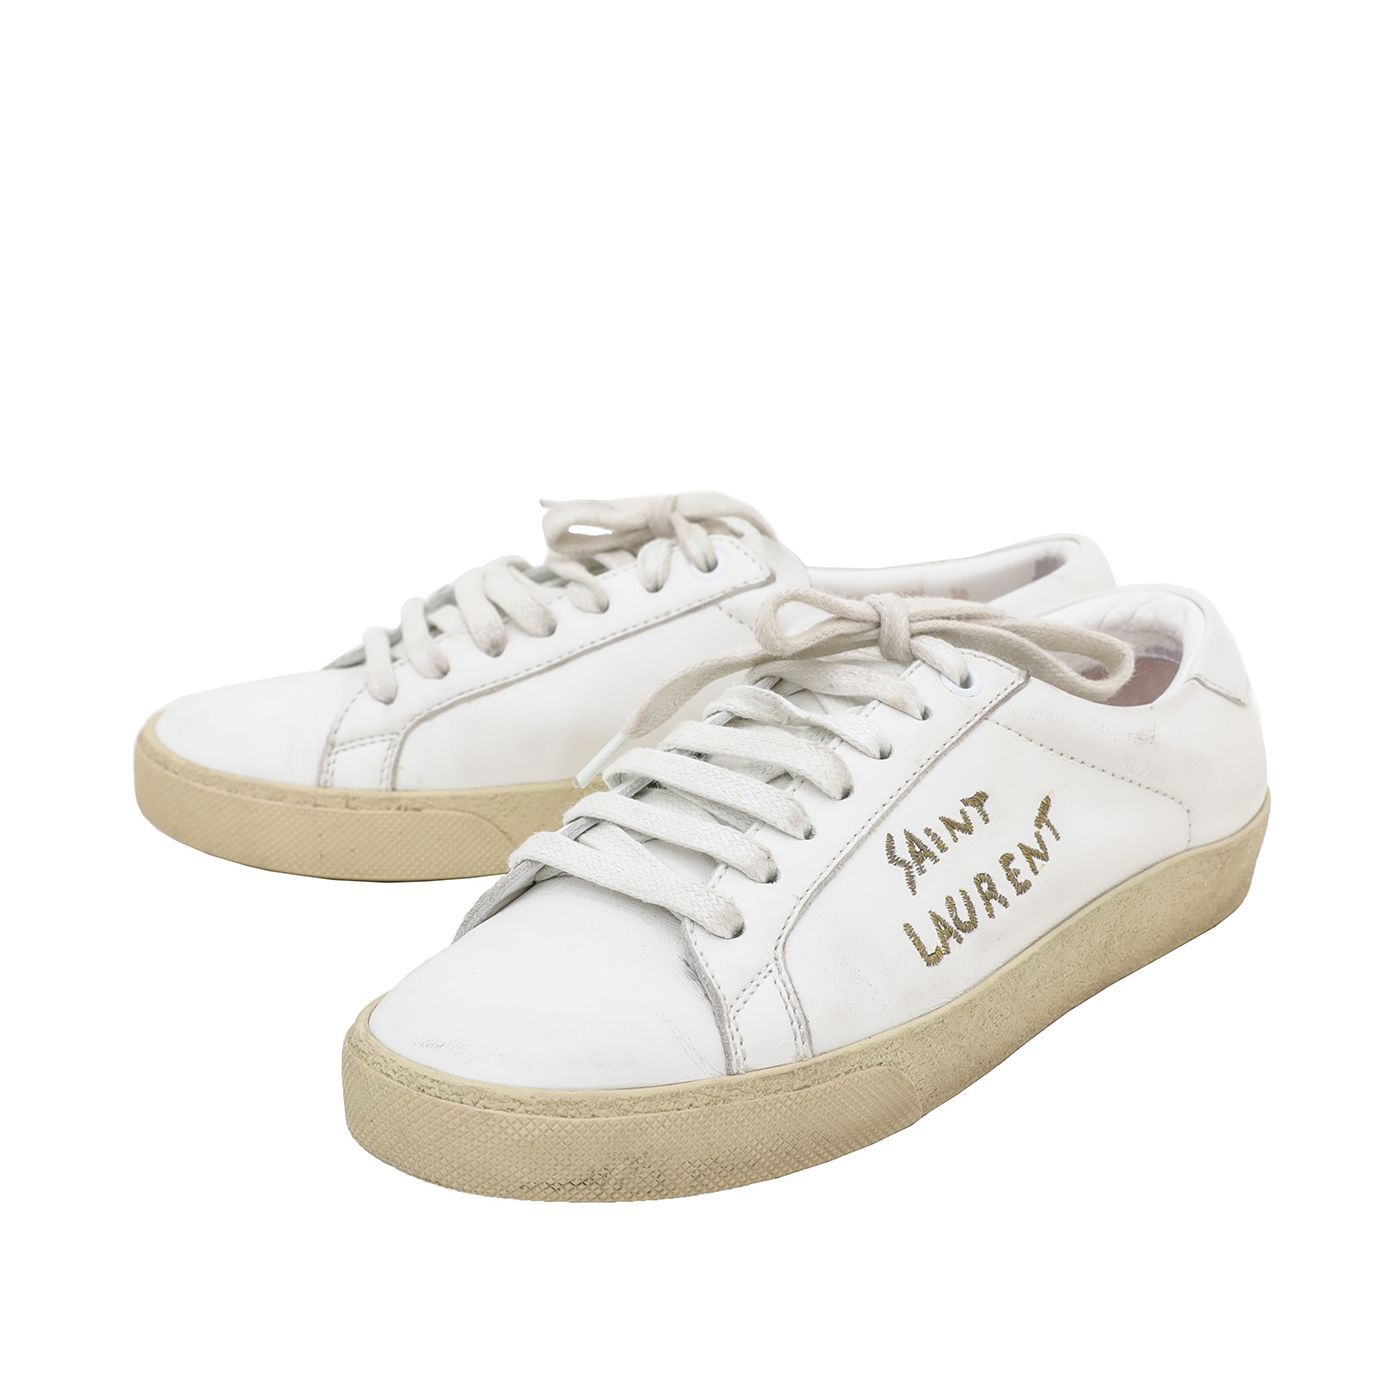 YSL White Court Classic Embroidered Logo Sneakers 38